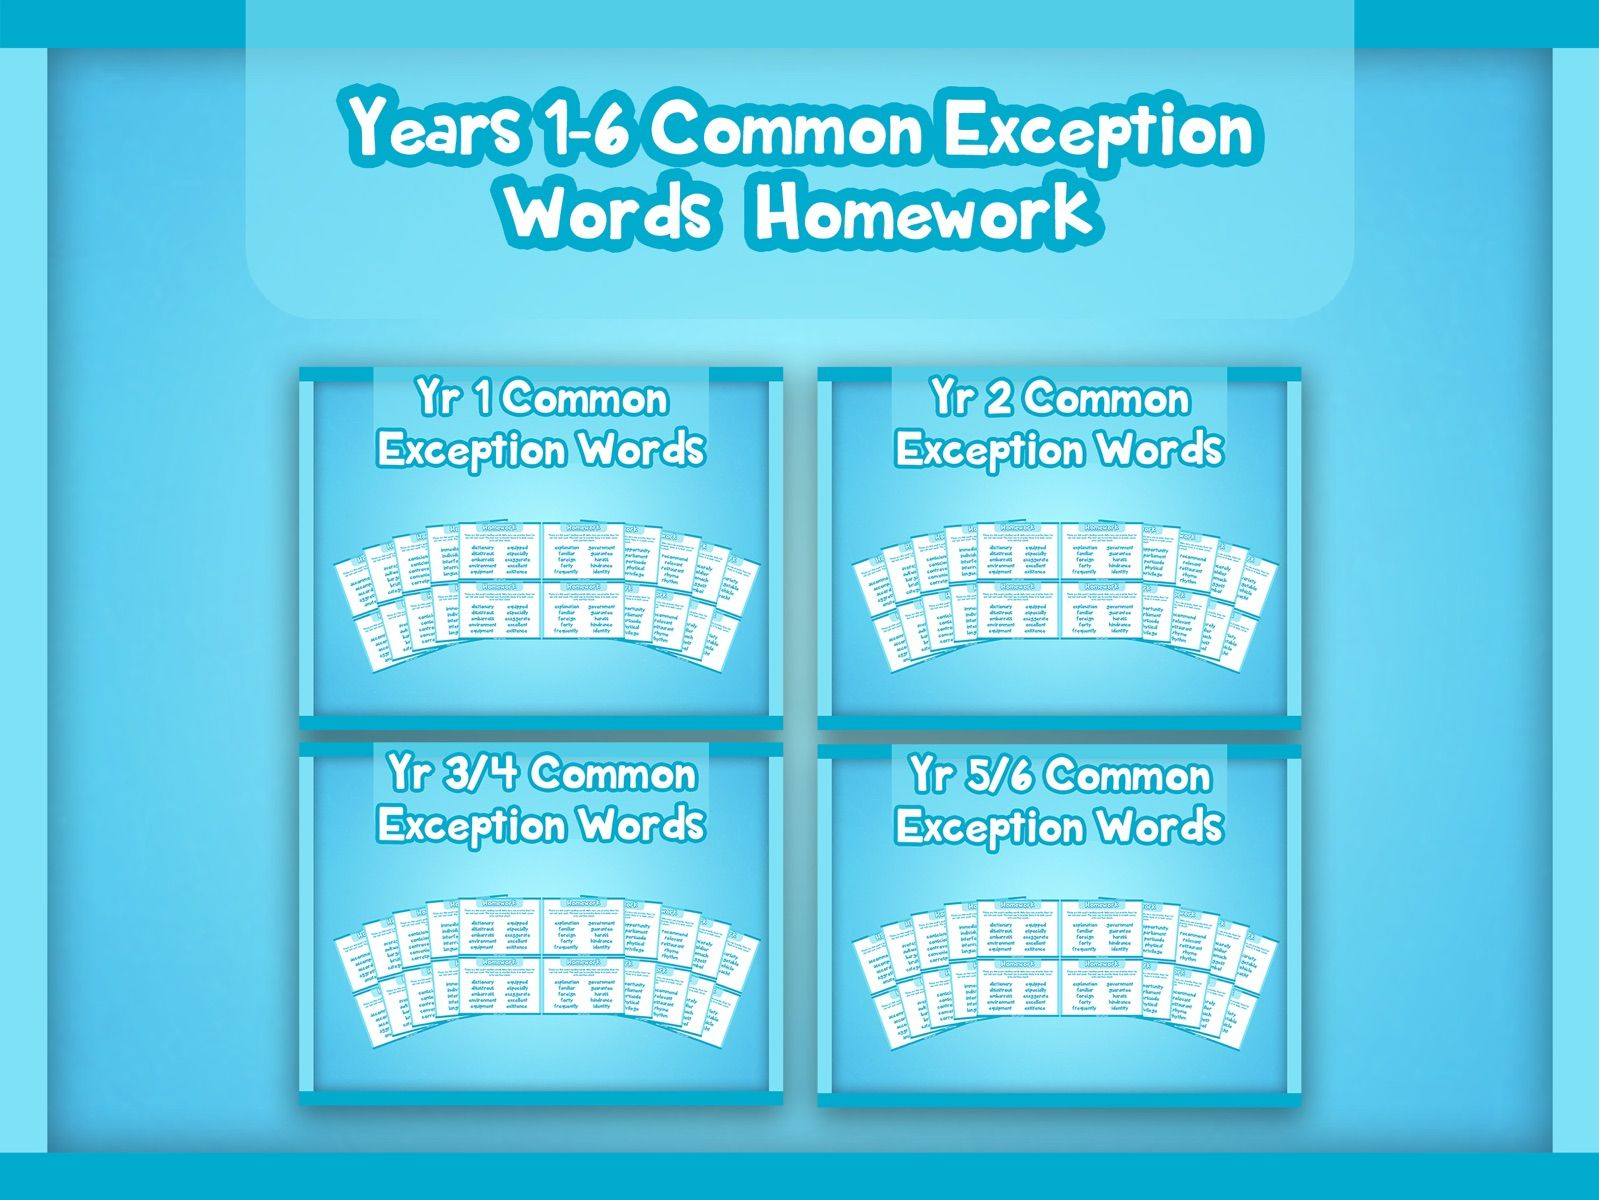 Years 1-6 Common Exception Words Homework